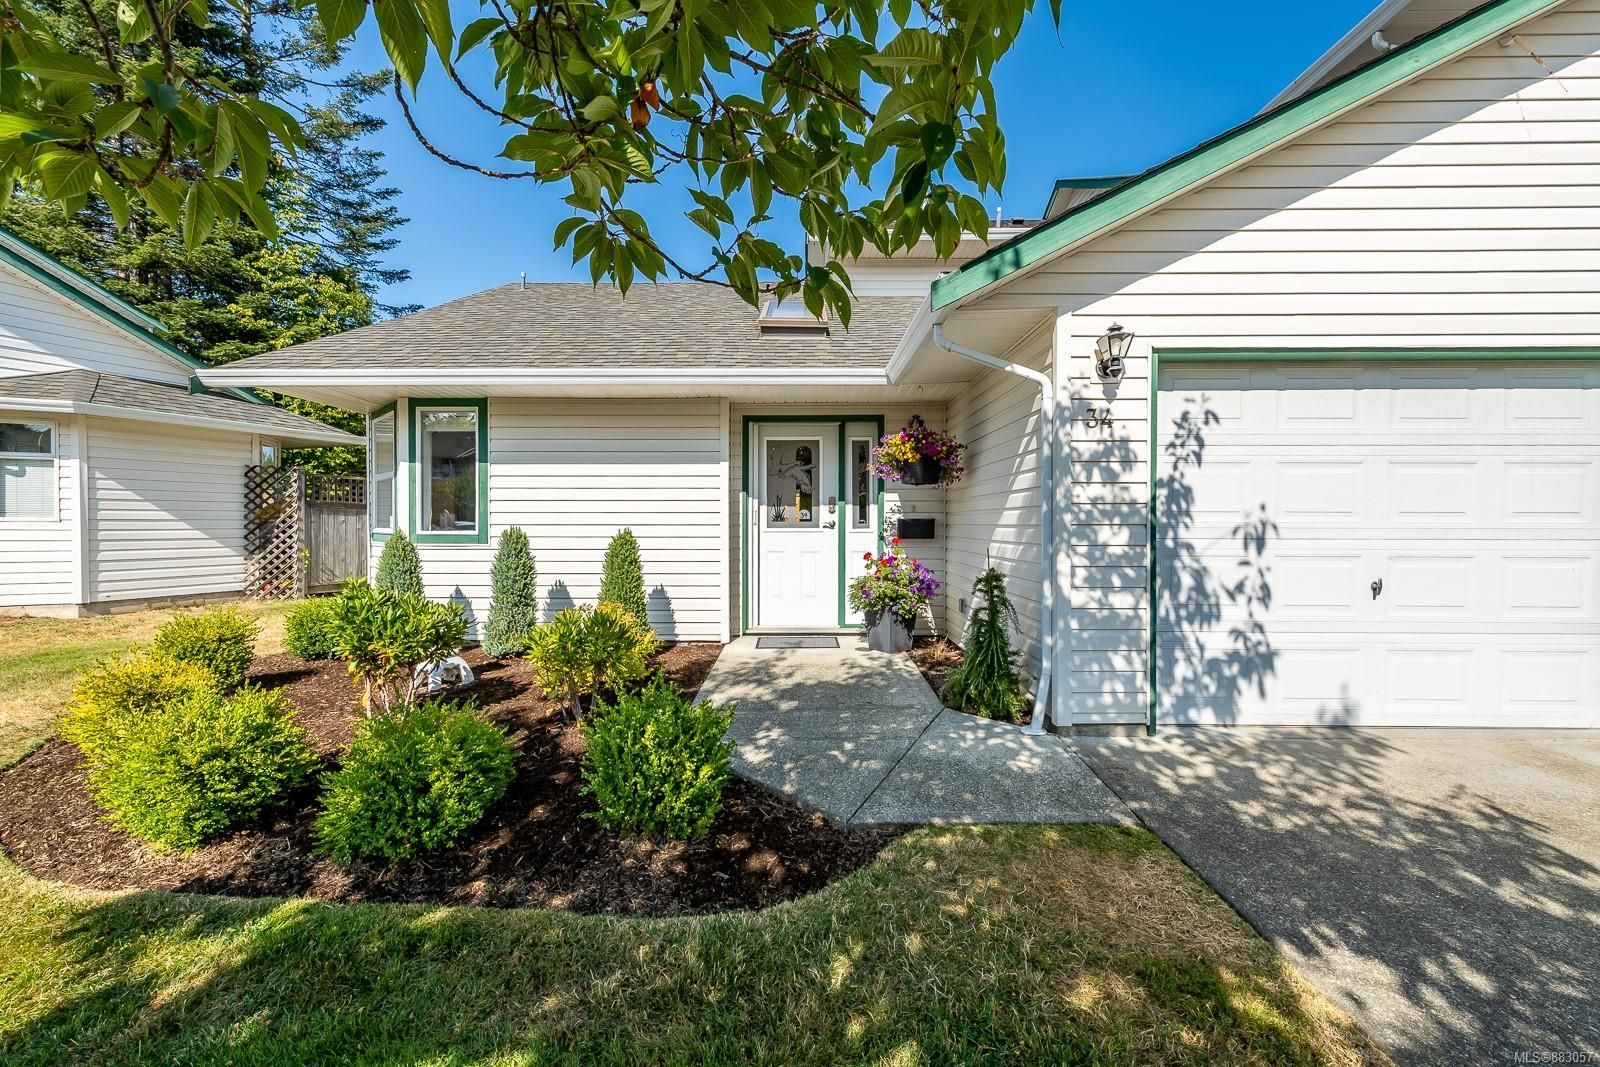 Main Photo: 34 2160 Hawk Dr in : CV Courtenay East Row/Townhouse for sale (Comox Valley)  : MLS®# 883057